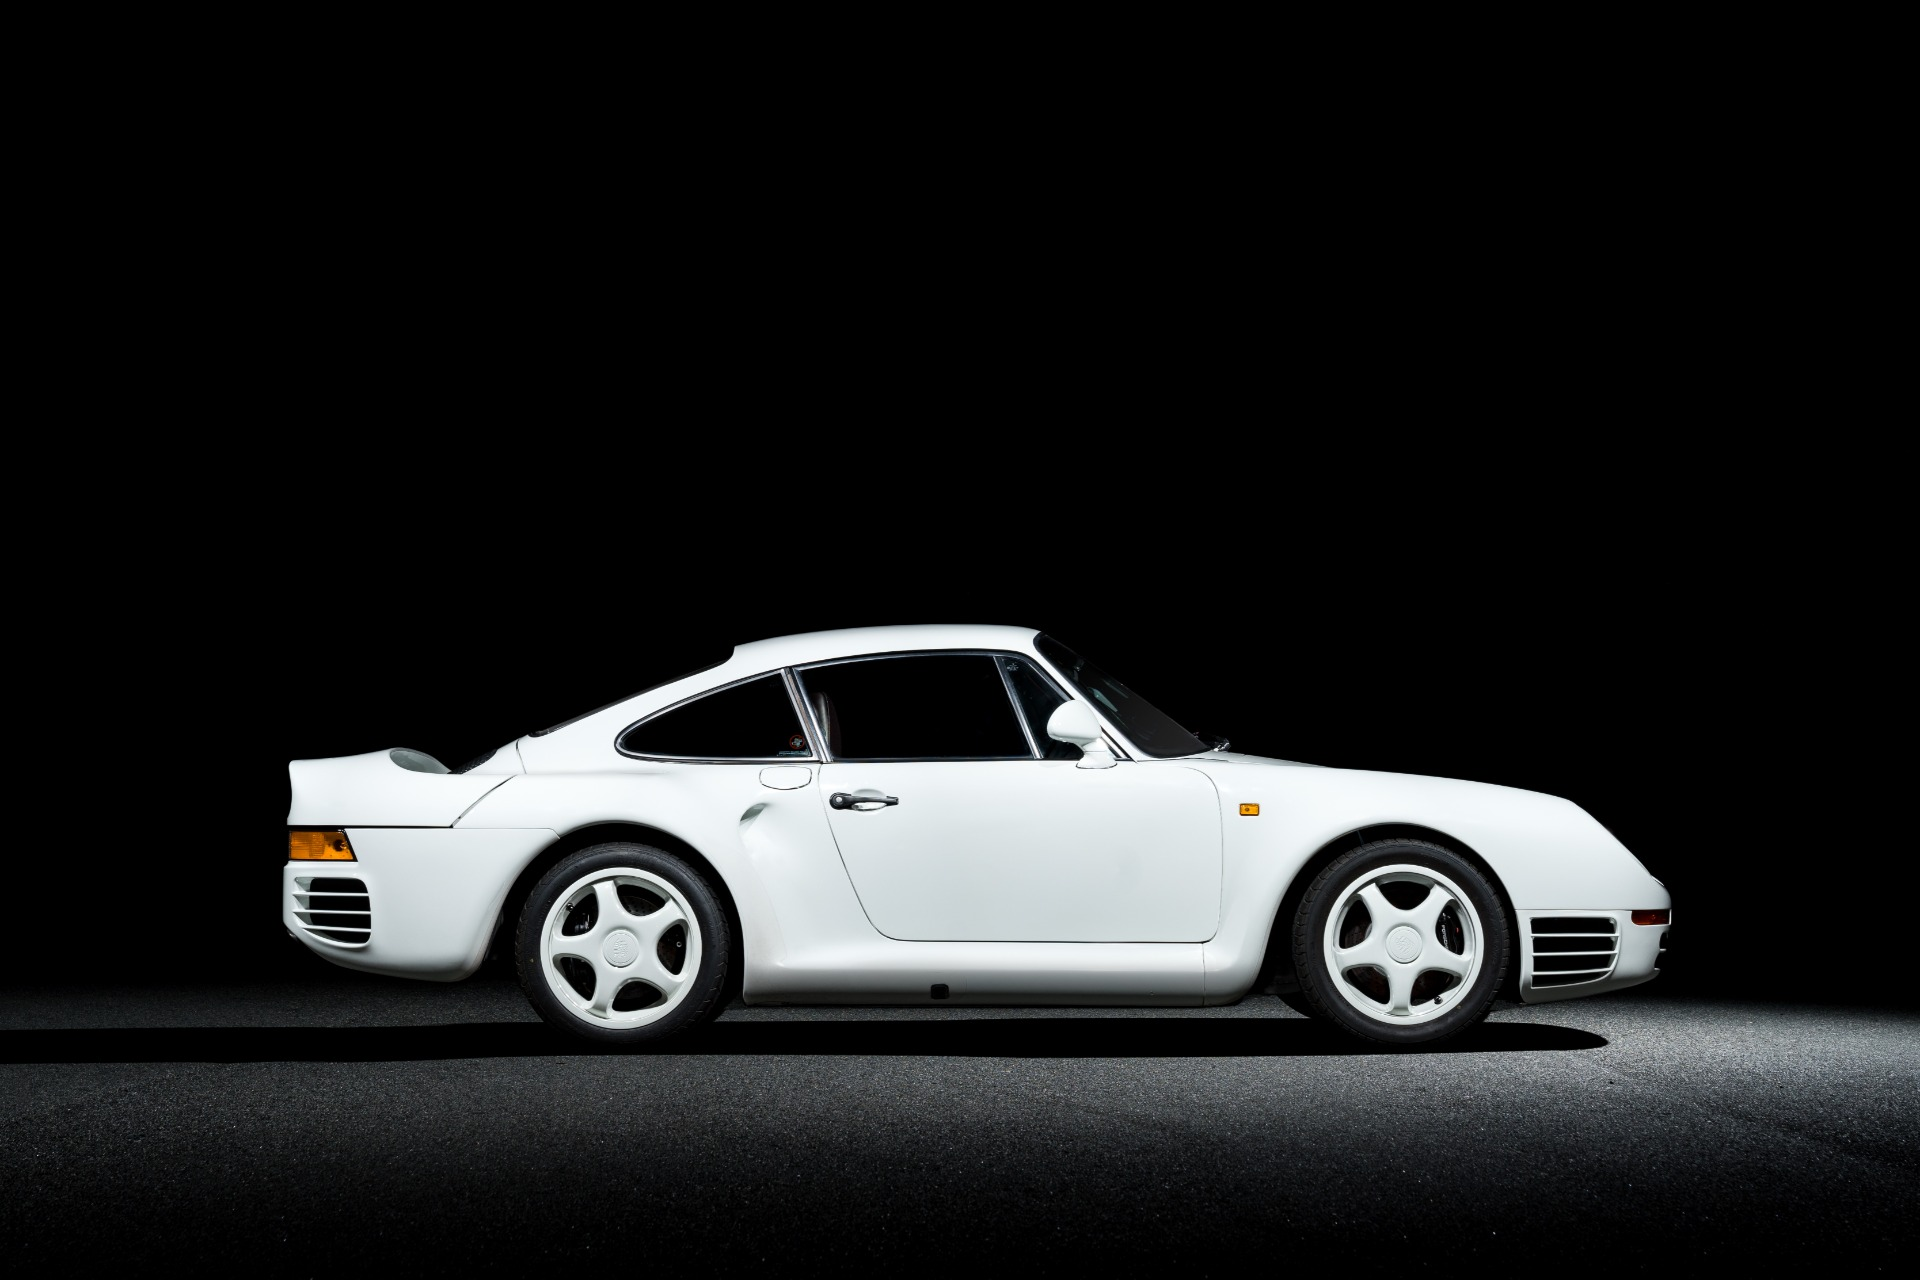 Used 1988 Porsche 959 KOMFORT COUPE / AWD / 6-SPEED MANUAL / ORIGINAL SUPERCAR for sale $1,425,000 at Formula Imports in Charlotte NC 28227 3